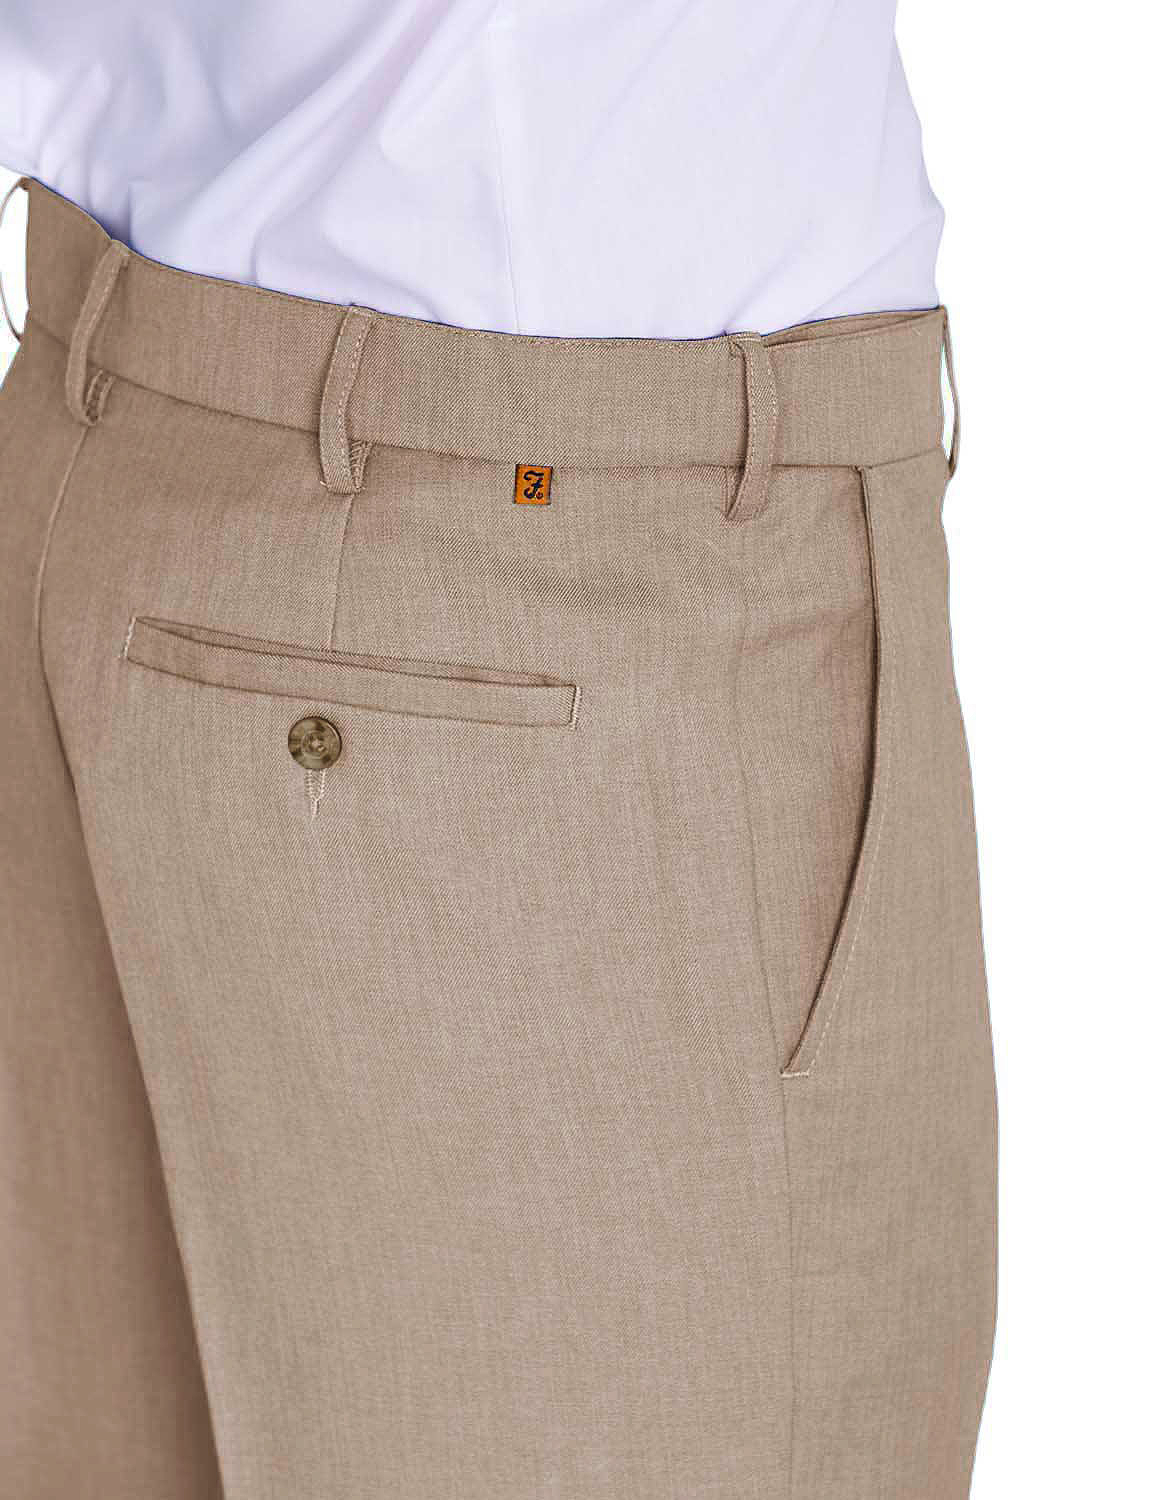 Comfortable and versatile, stretch trousers are a smart addition to every woman's wardrobe and they can be worn in lots of ways to create unique, appealing outfits. All elastic trousers give a flattering fit that is made possible by their unique properties and flexible fabric, and they are available in colors and patterns that appeal to a diverse range of tastes.